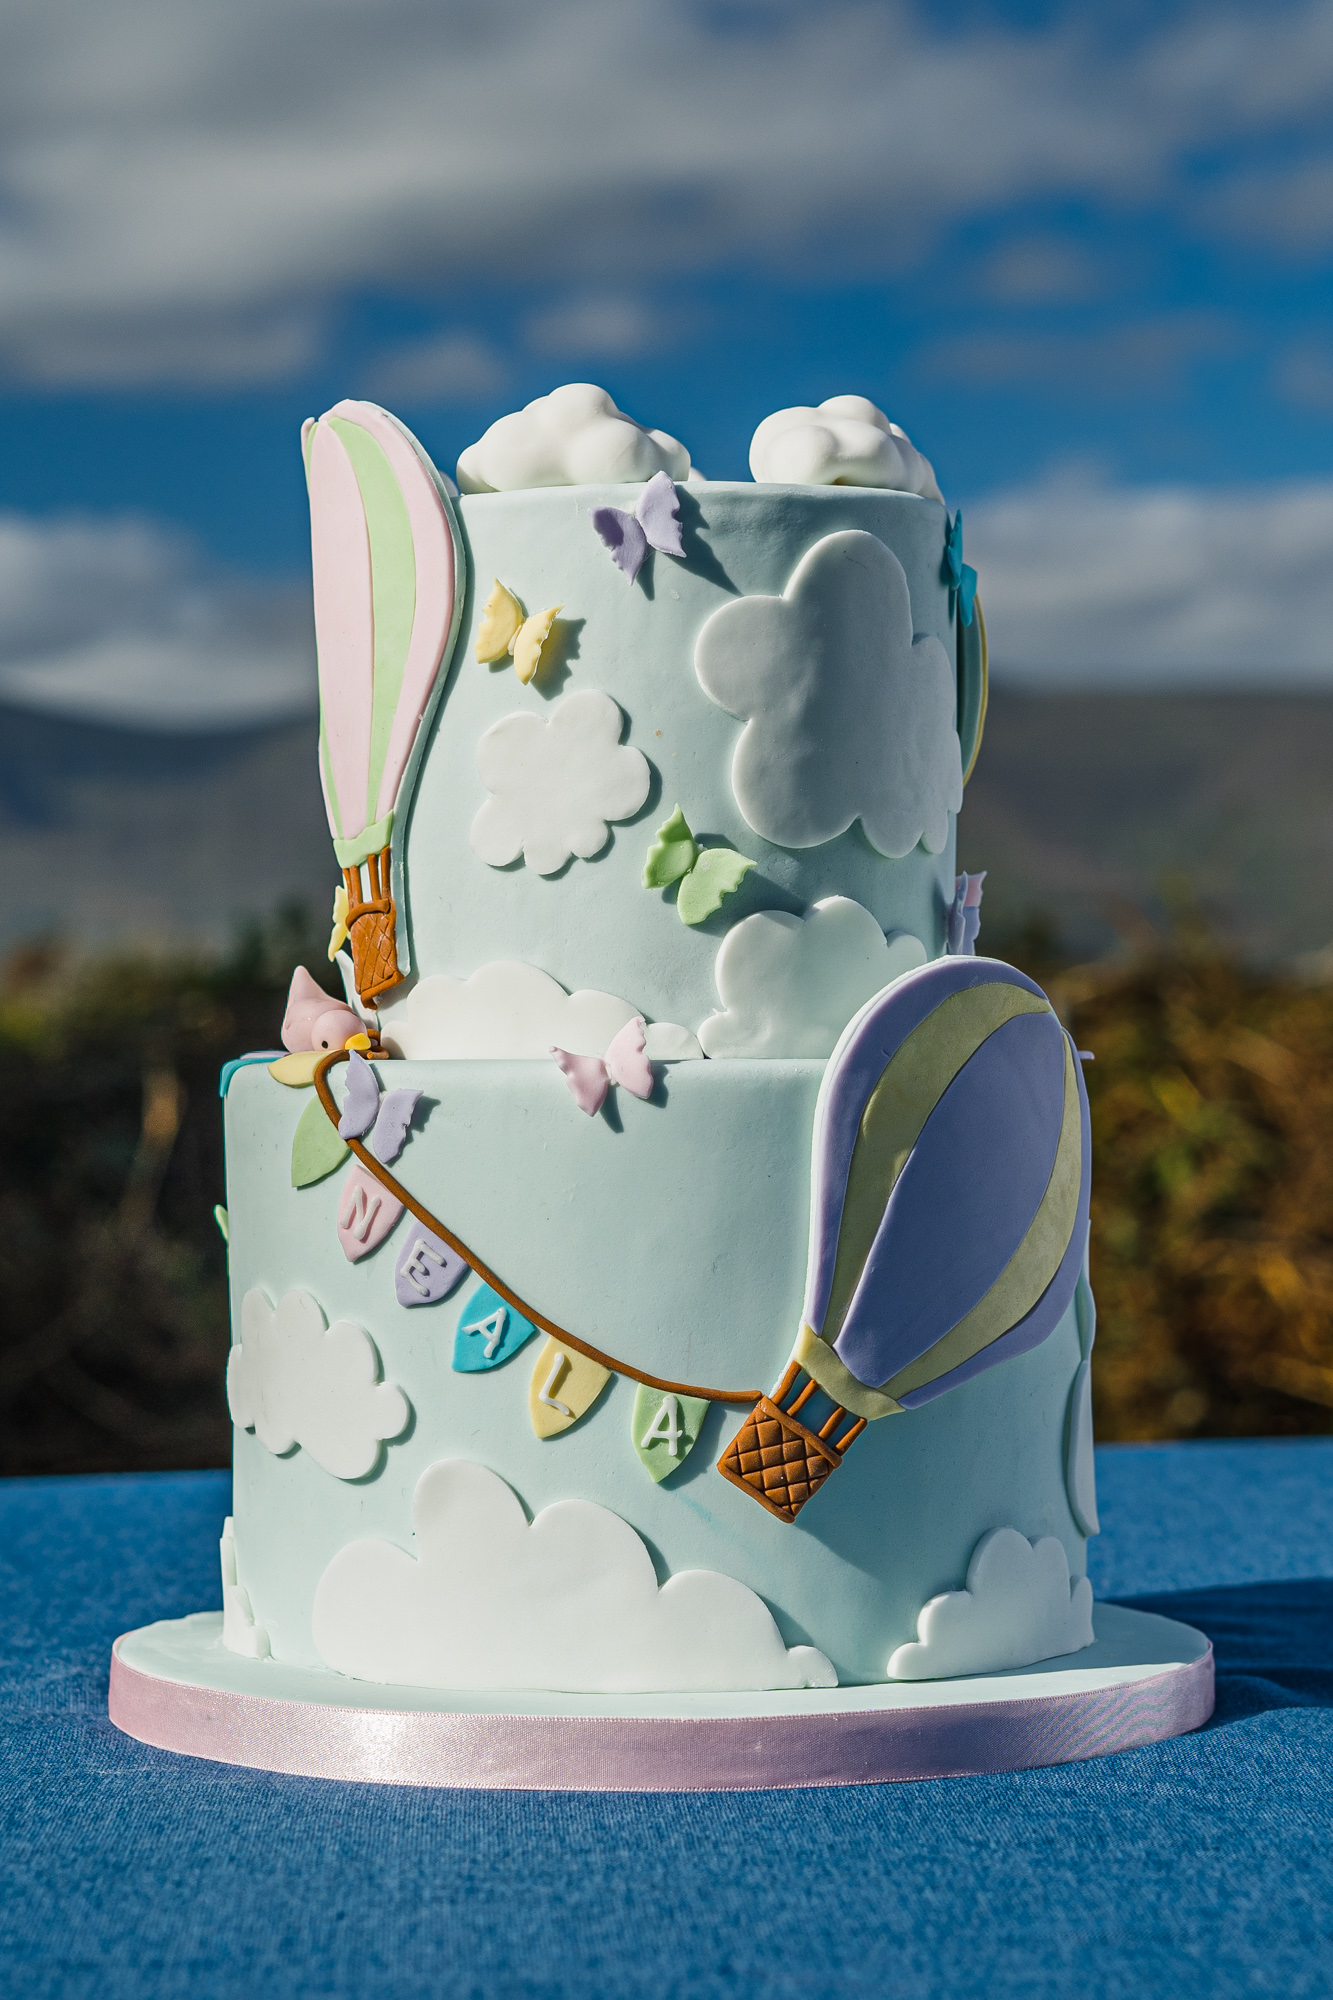 Hot air balloons in a blue sky cake